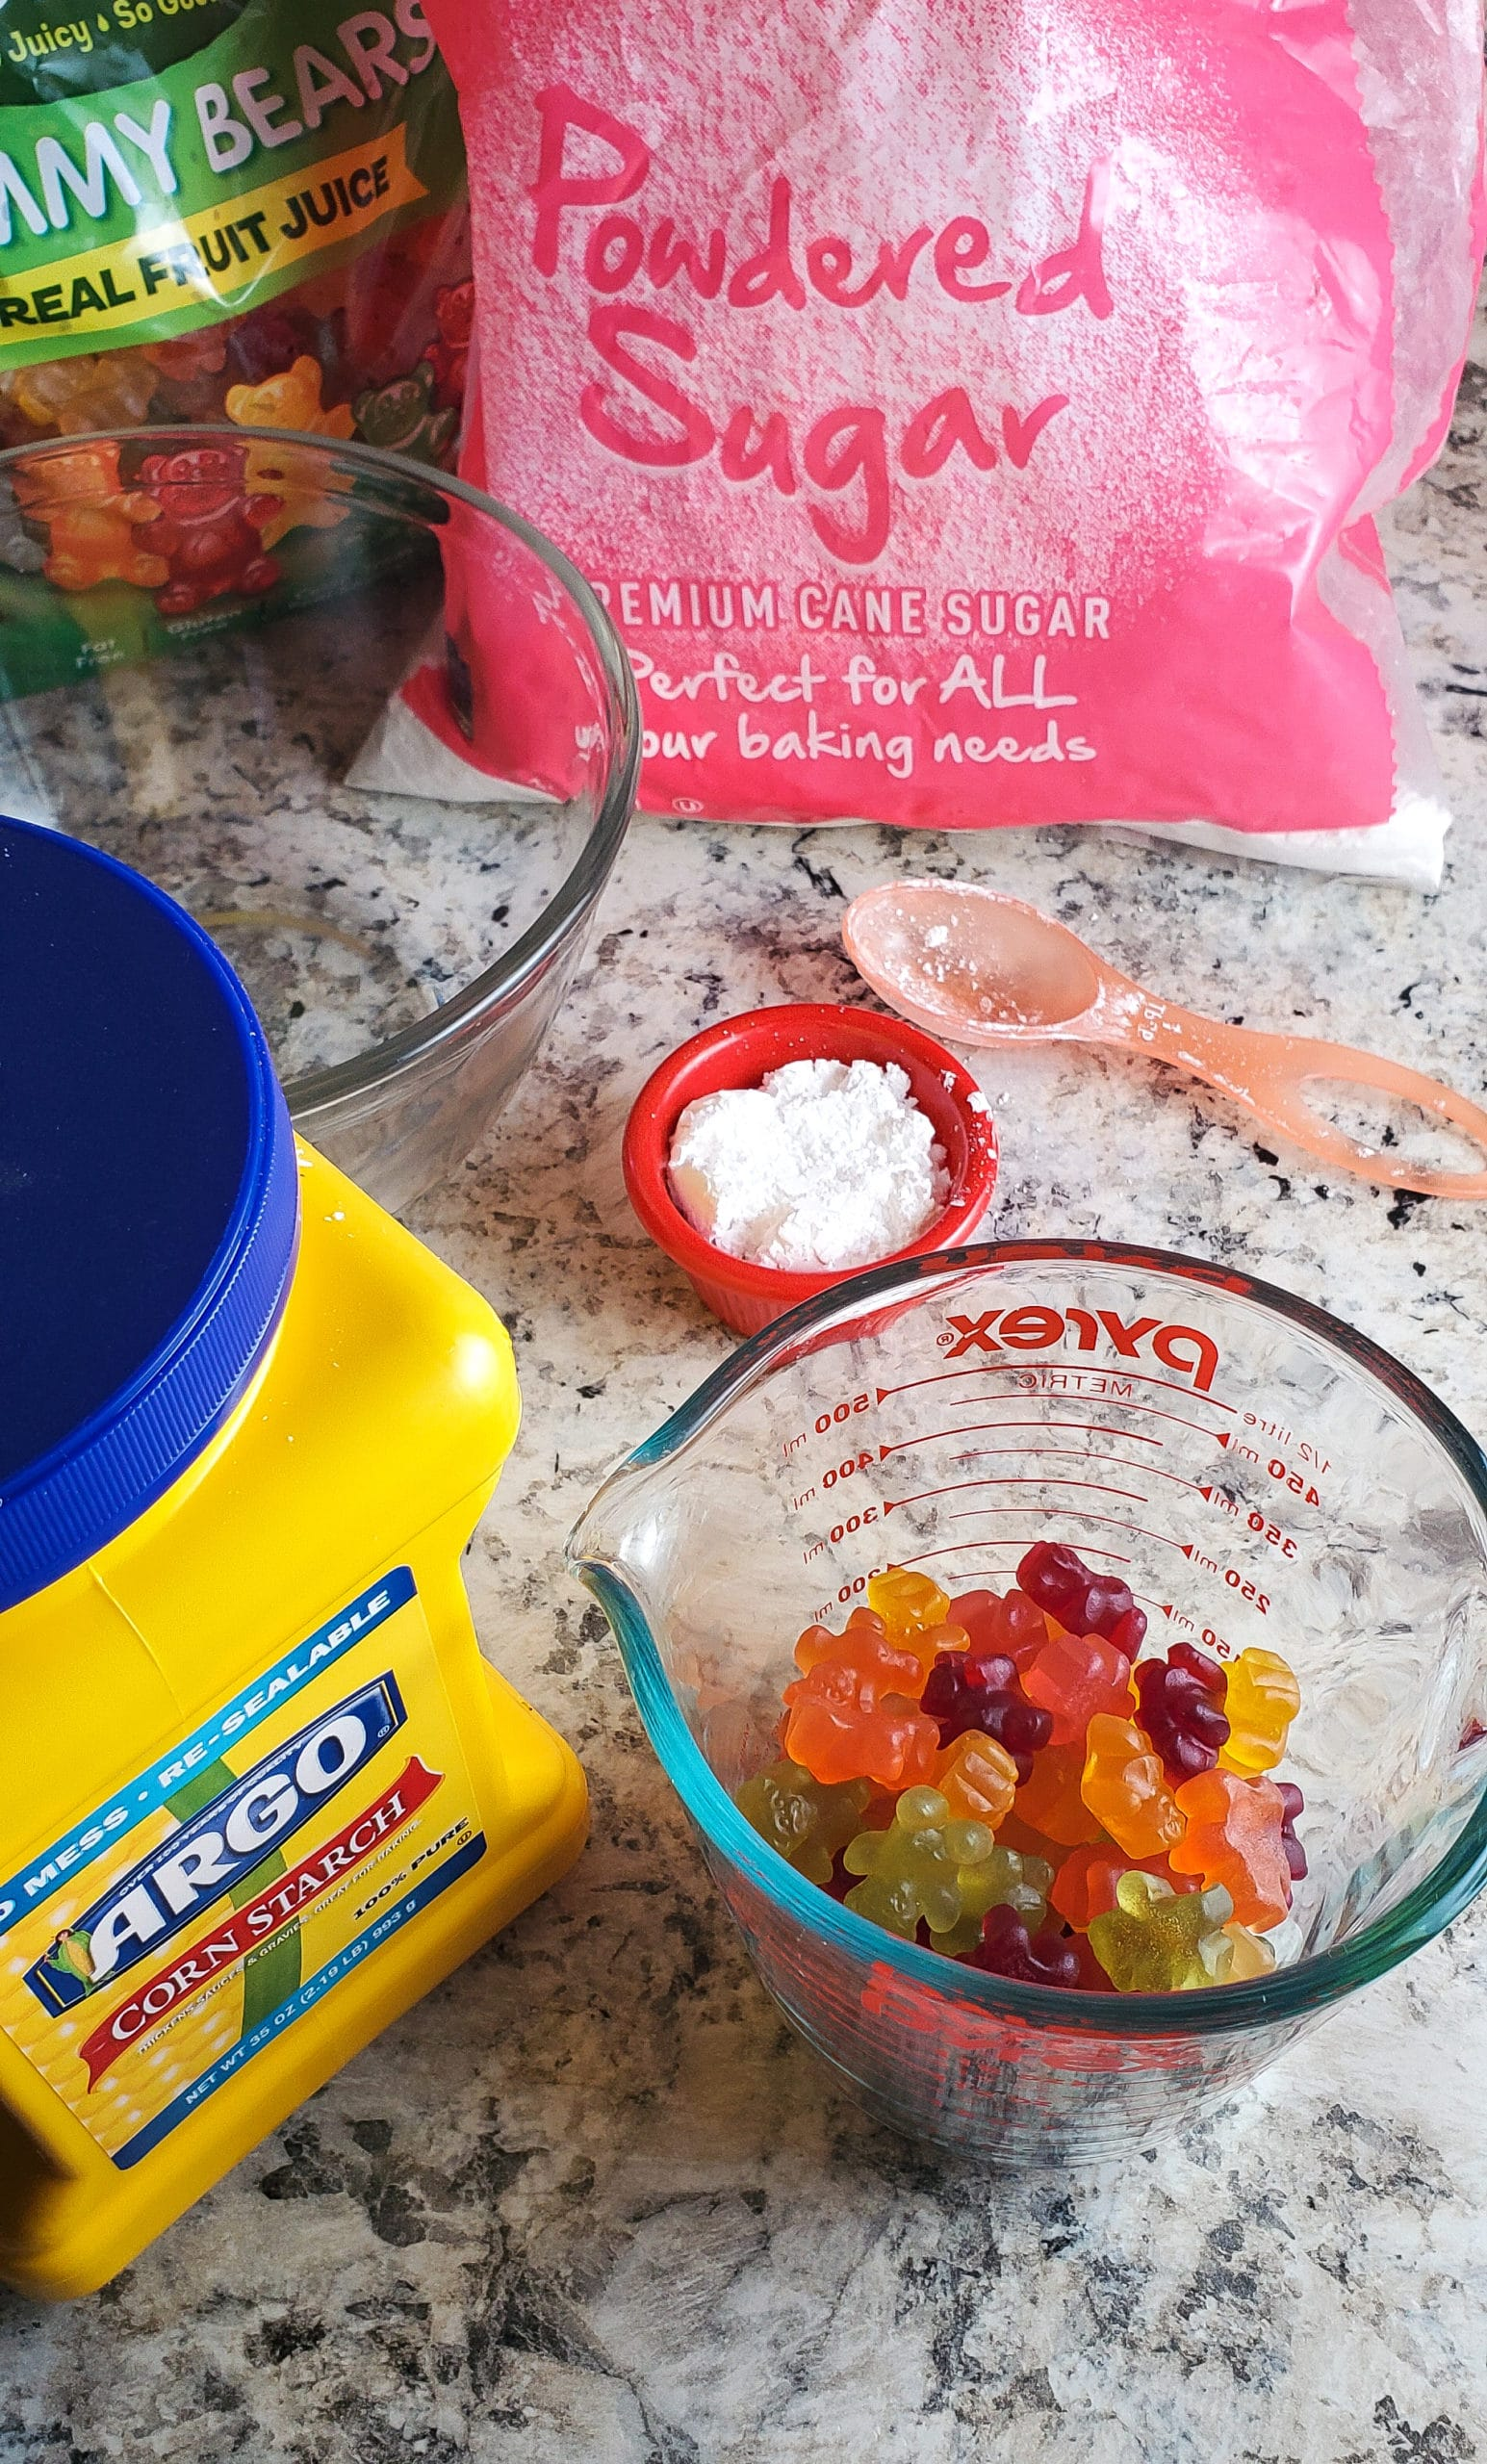 Gummy Bear Slime Ingredients. Get ready for loveable bear hugs, digital culture references, life lessons, and Gummy Bear Slime! Stack the bears up, squish them down and make this adventurous slime that you can actually eat!